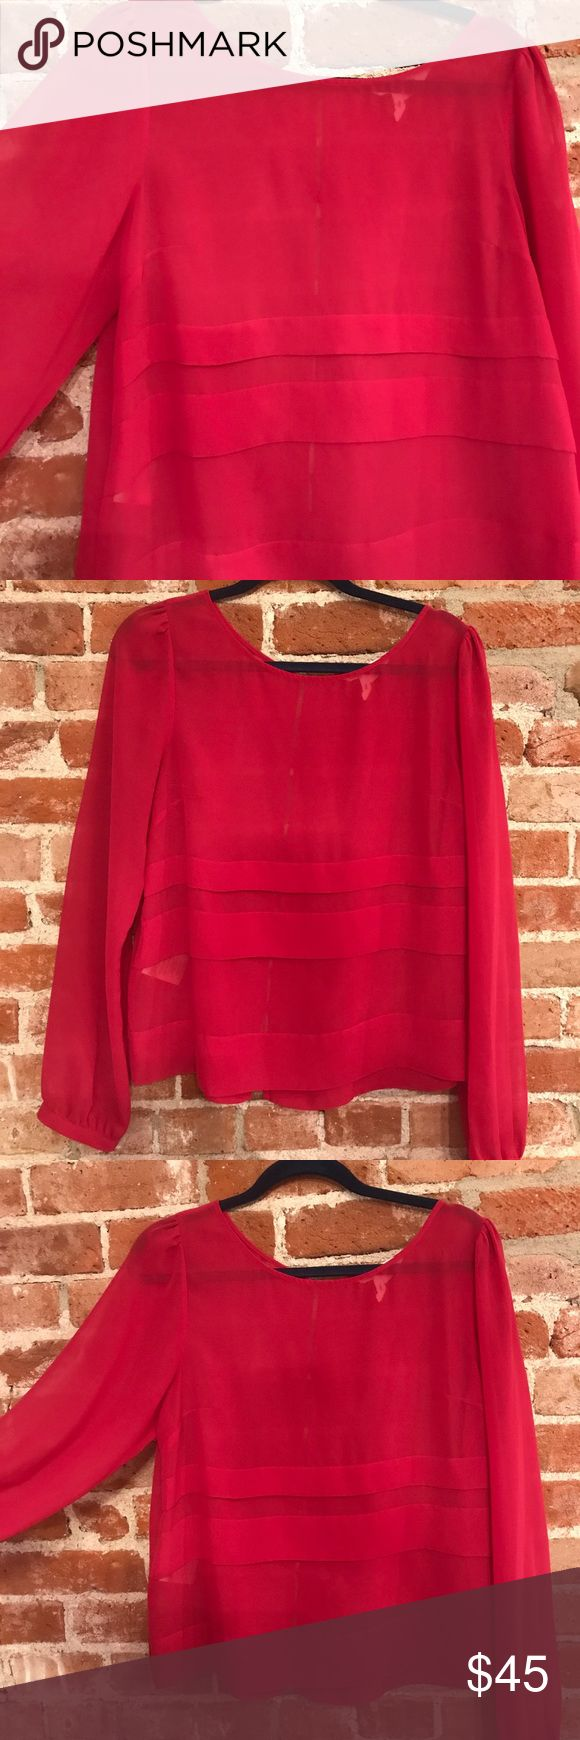 Pink Shear BCBG Top BCBGeneration pink shear top. It has beautiful details on front and back. Size large BCBGeneration Tops Blouses